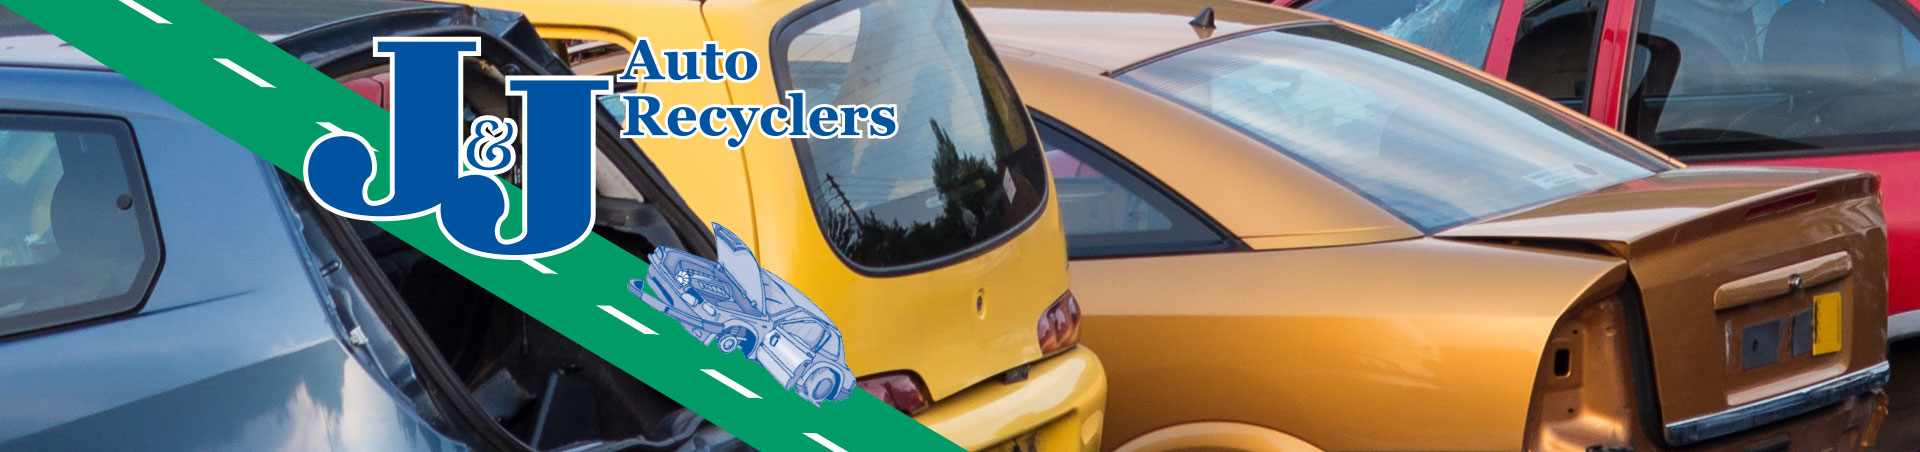 J & J Auto Recyclers